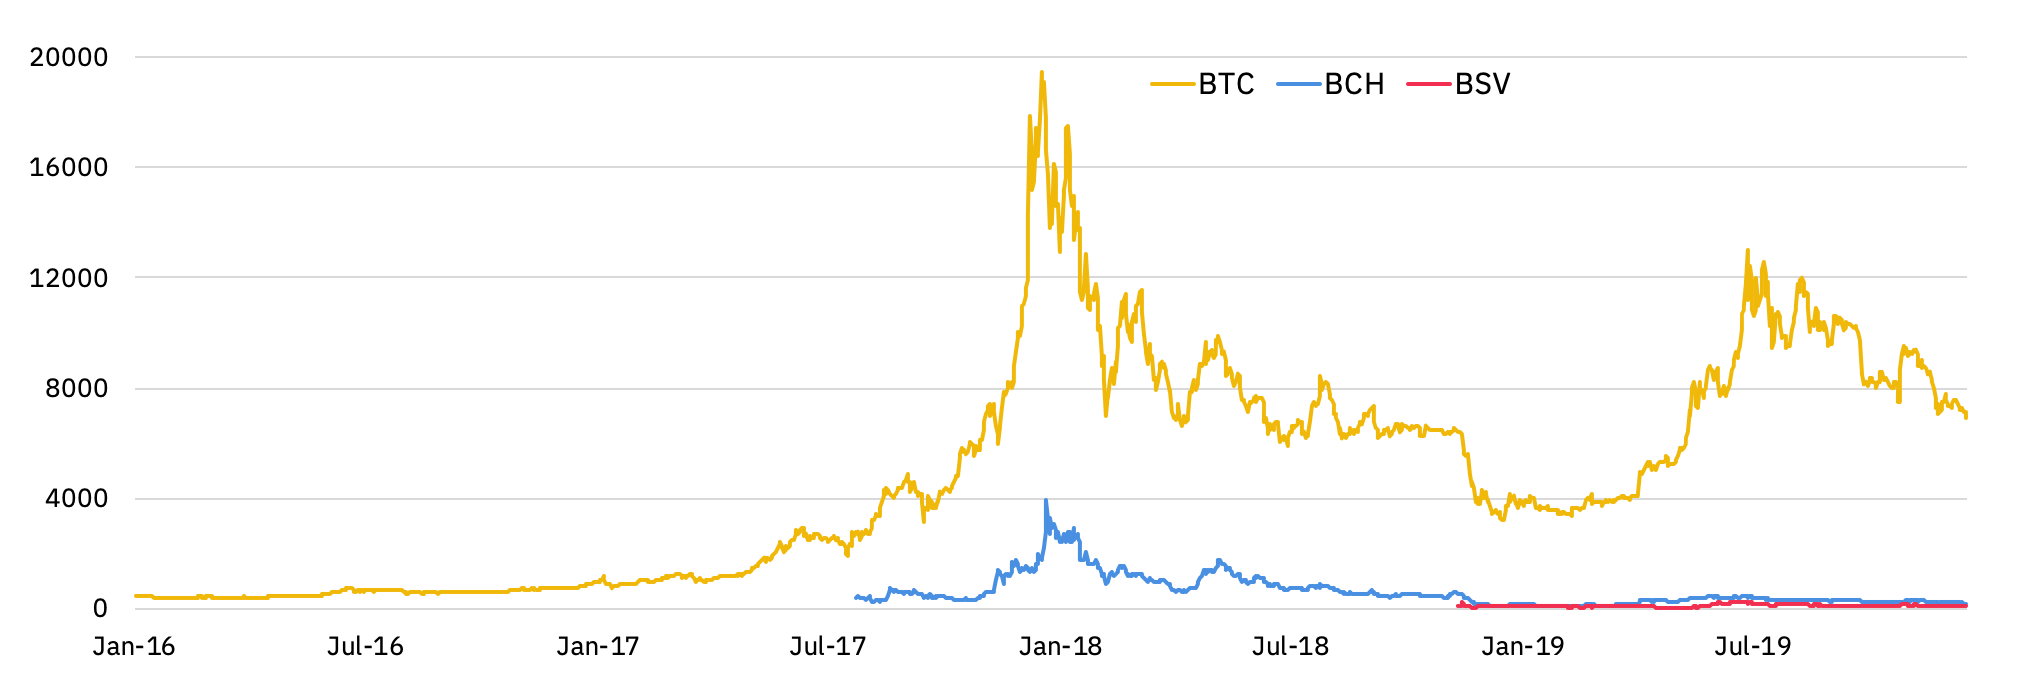 prices of BTC, BCH, and BSV